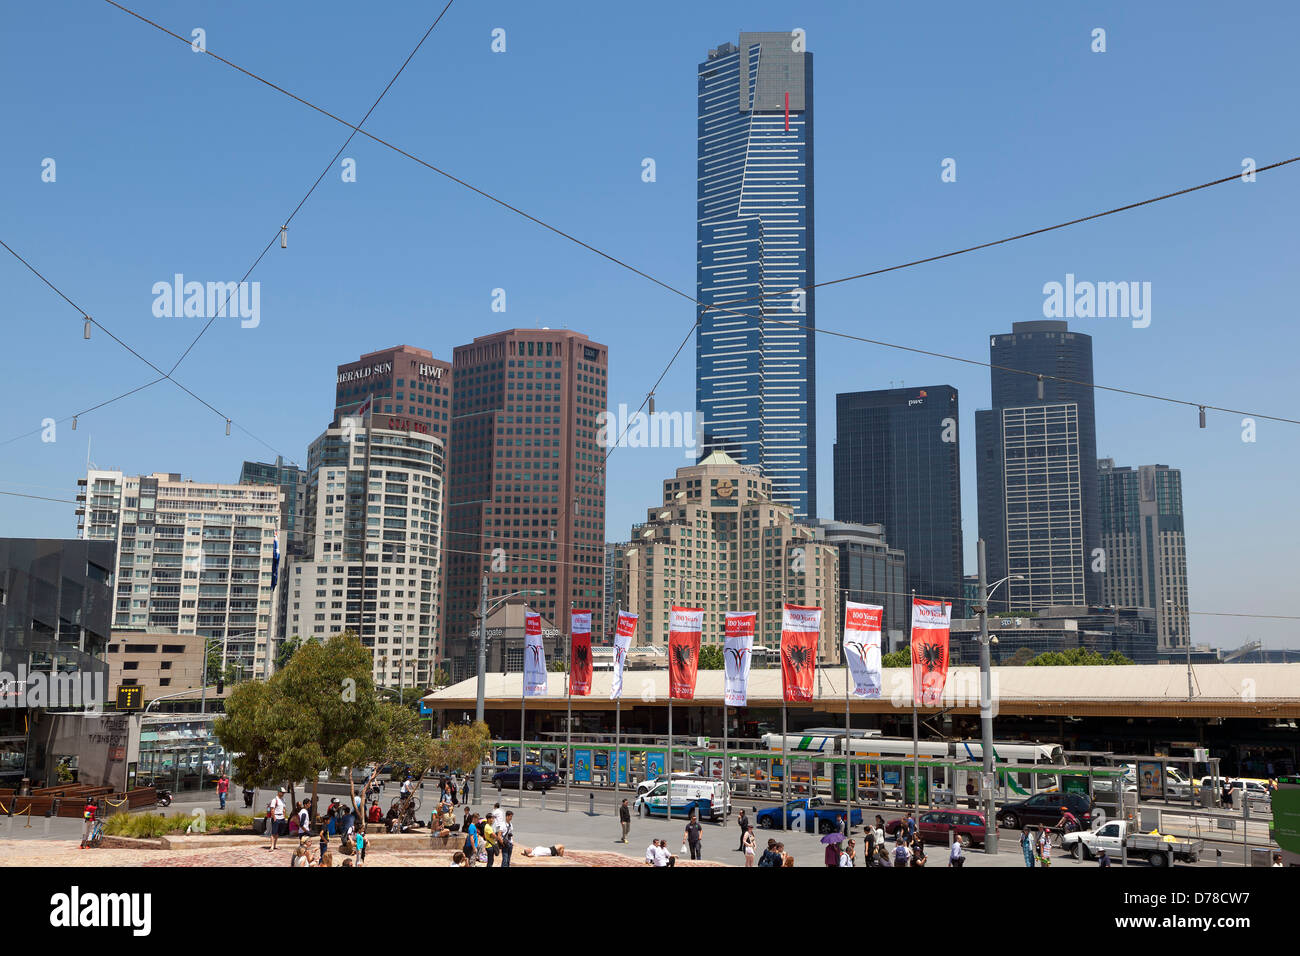 View at the Eureka tower in Melbourne, Australia - Stock Image